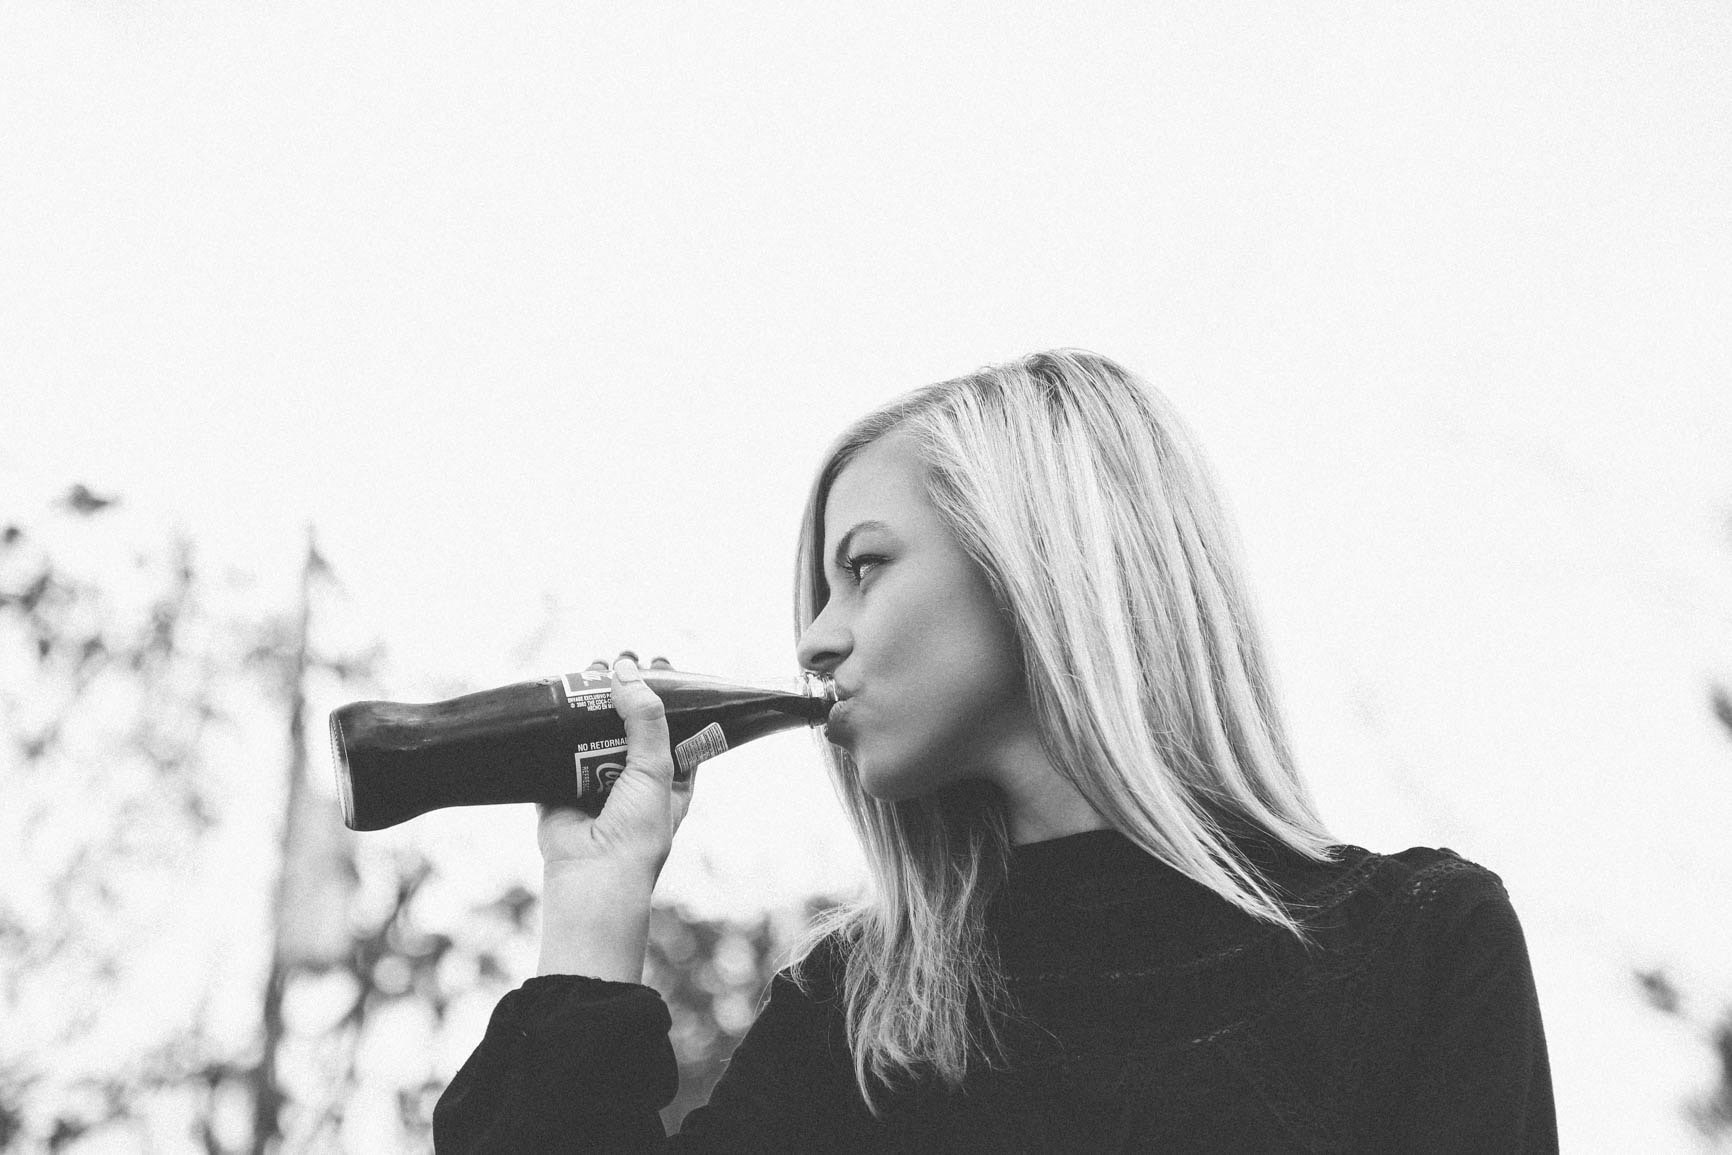 woman drinking soda bottle